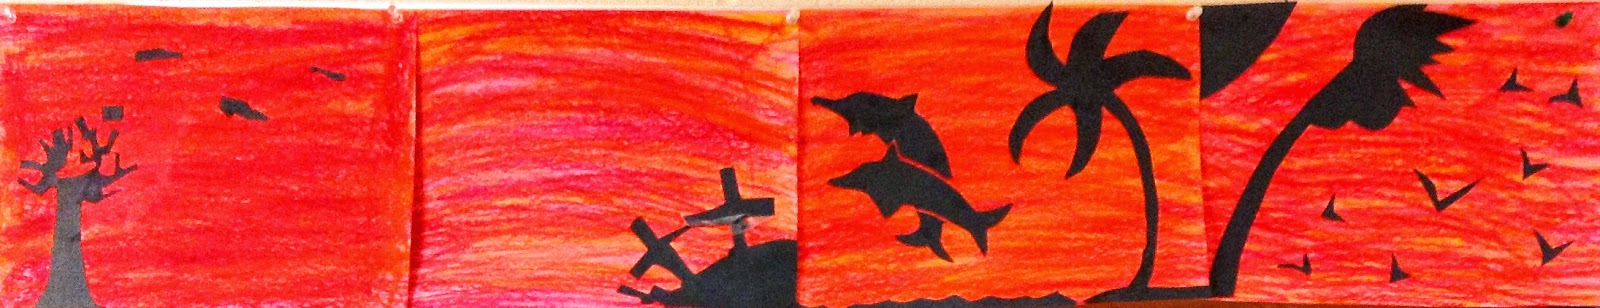 Fourth Grade Warm Cool Colors Silhouette Art Lesson